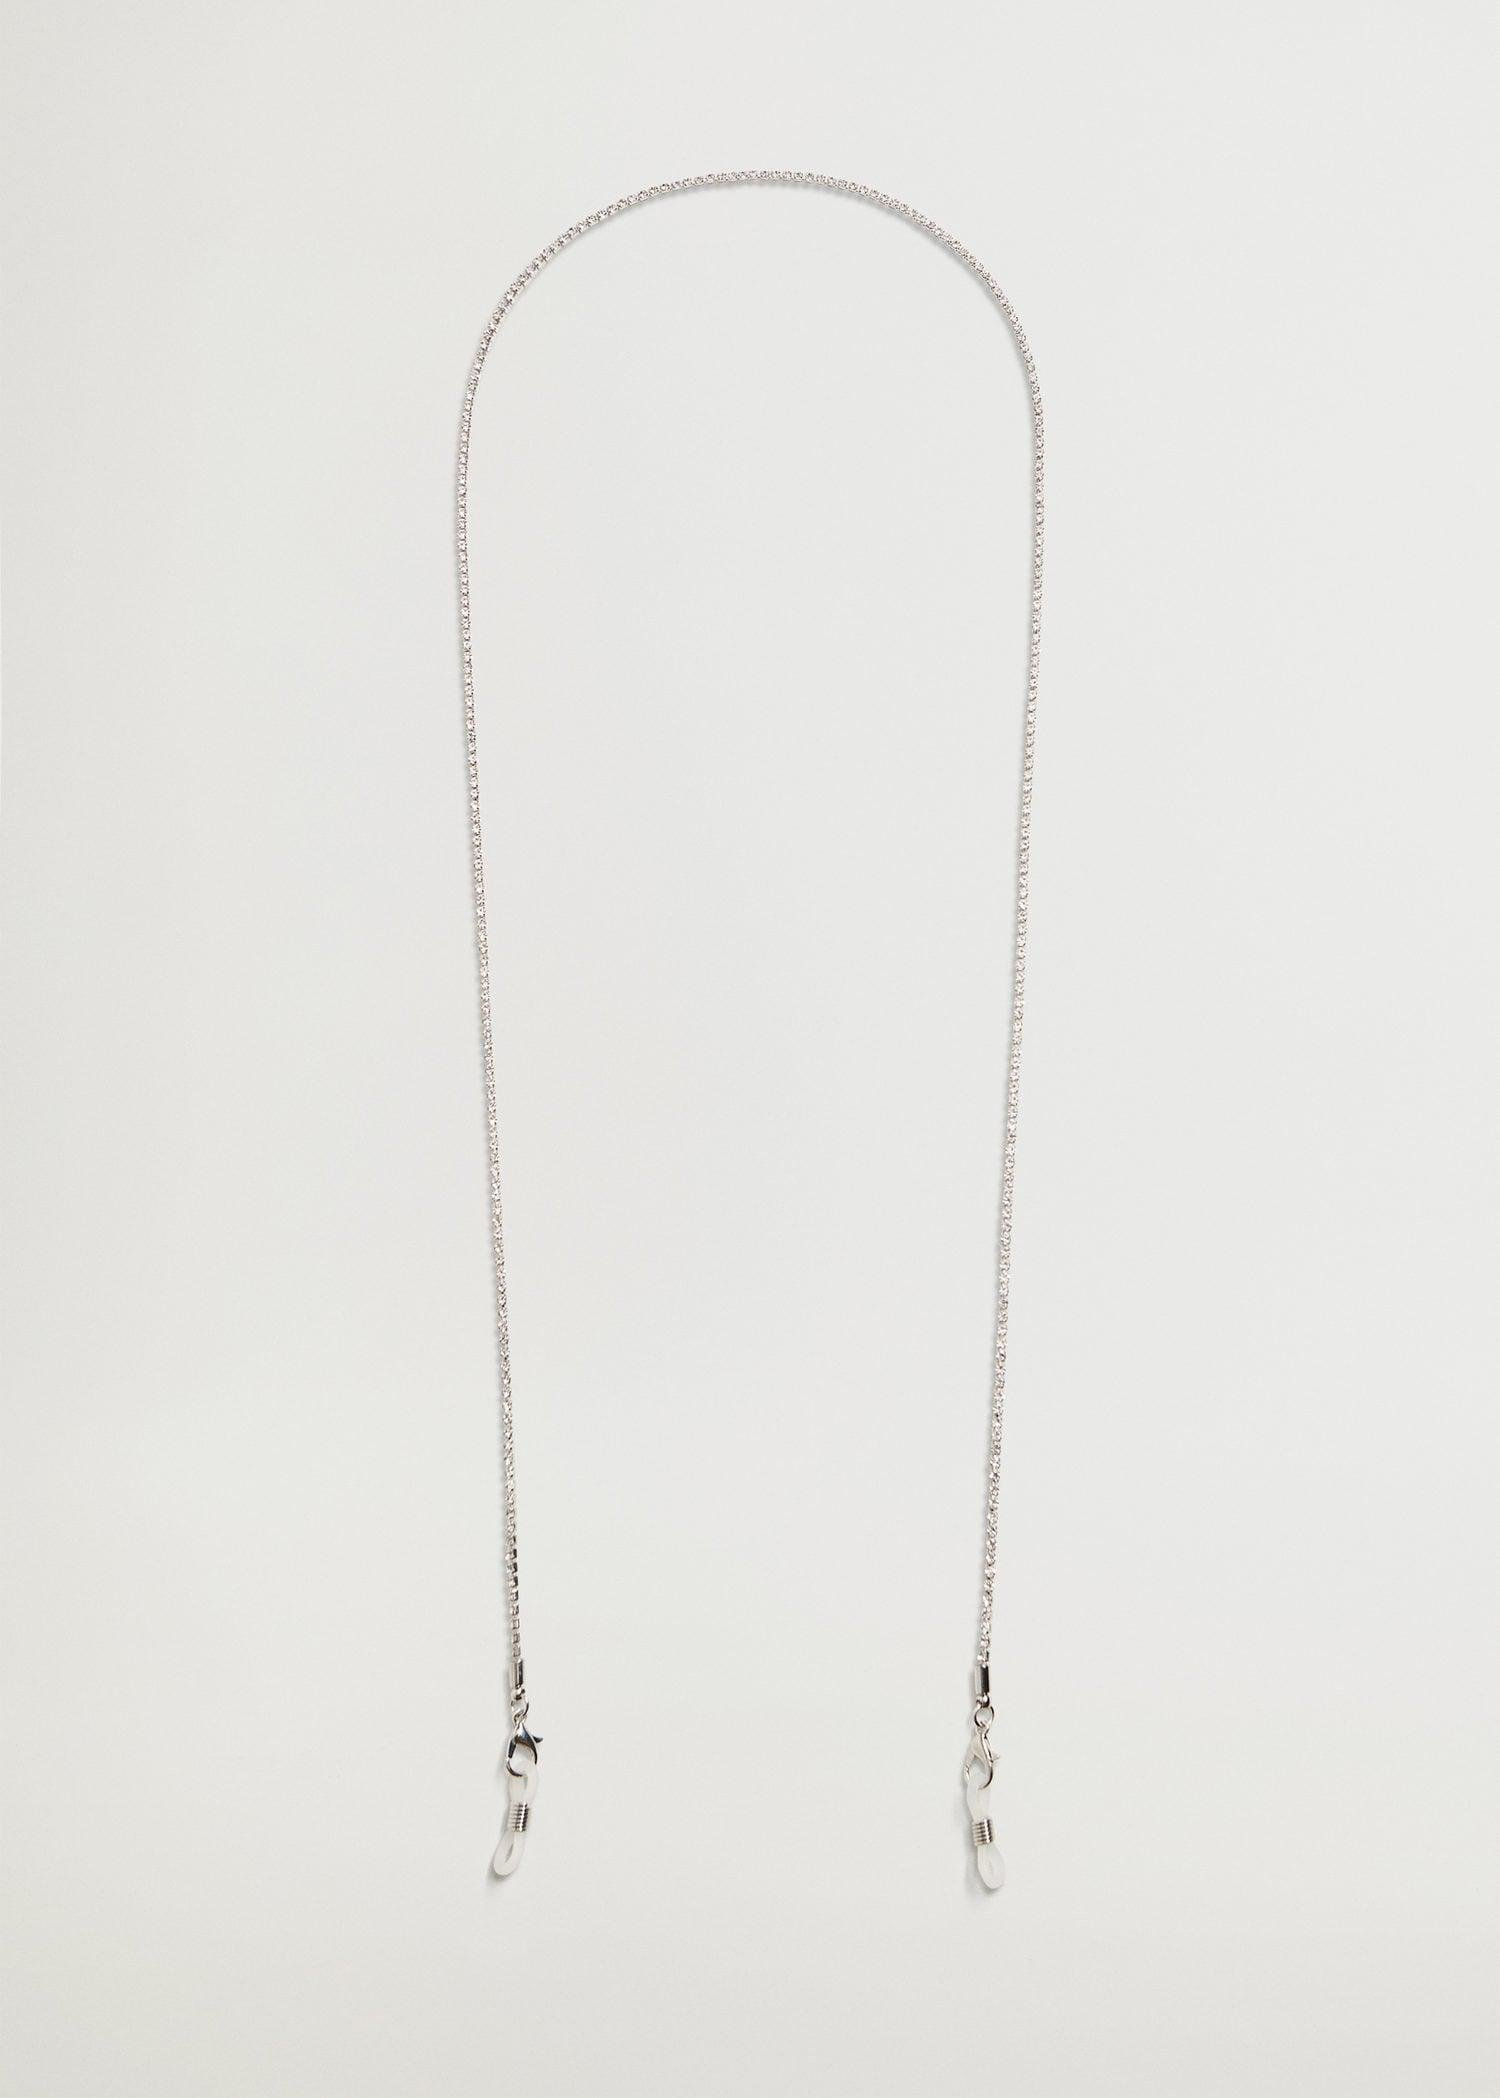 Facemask chain